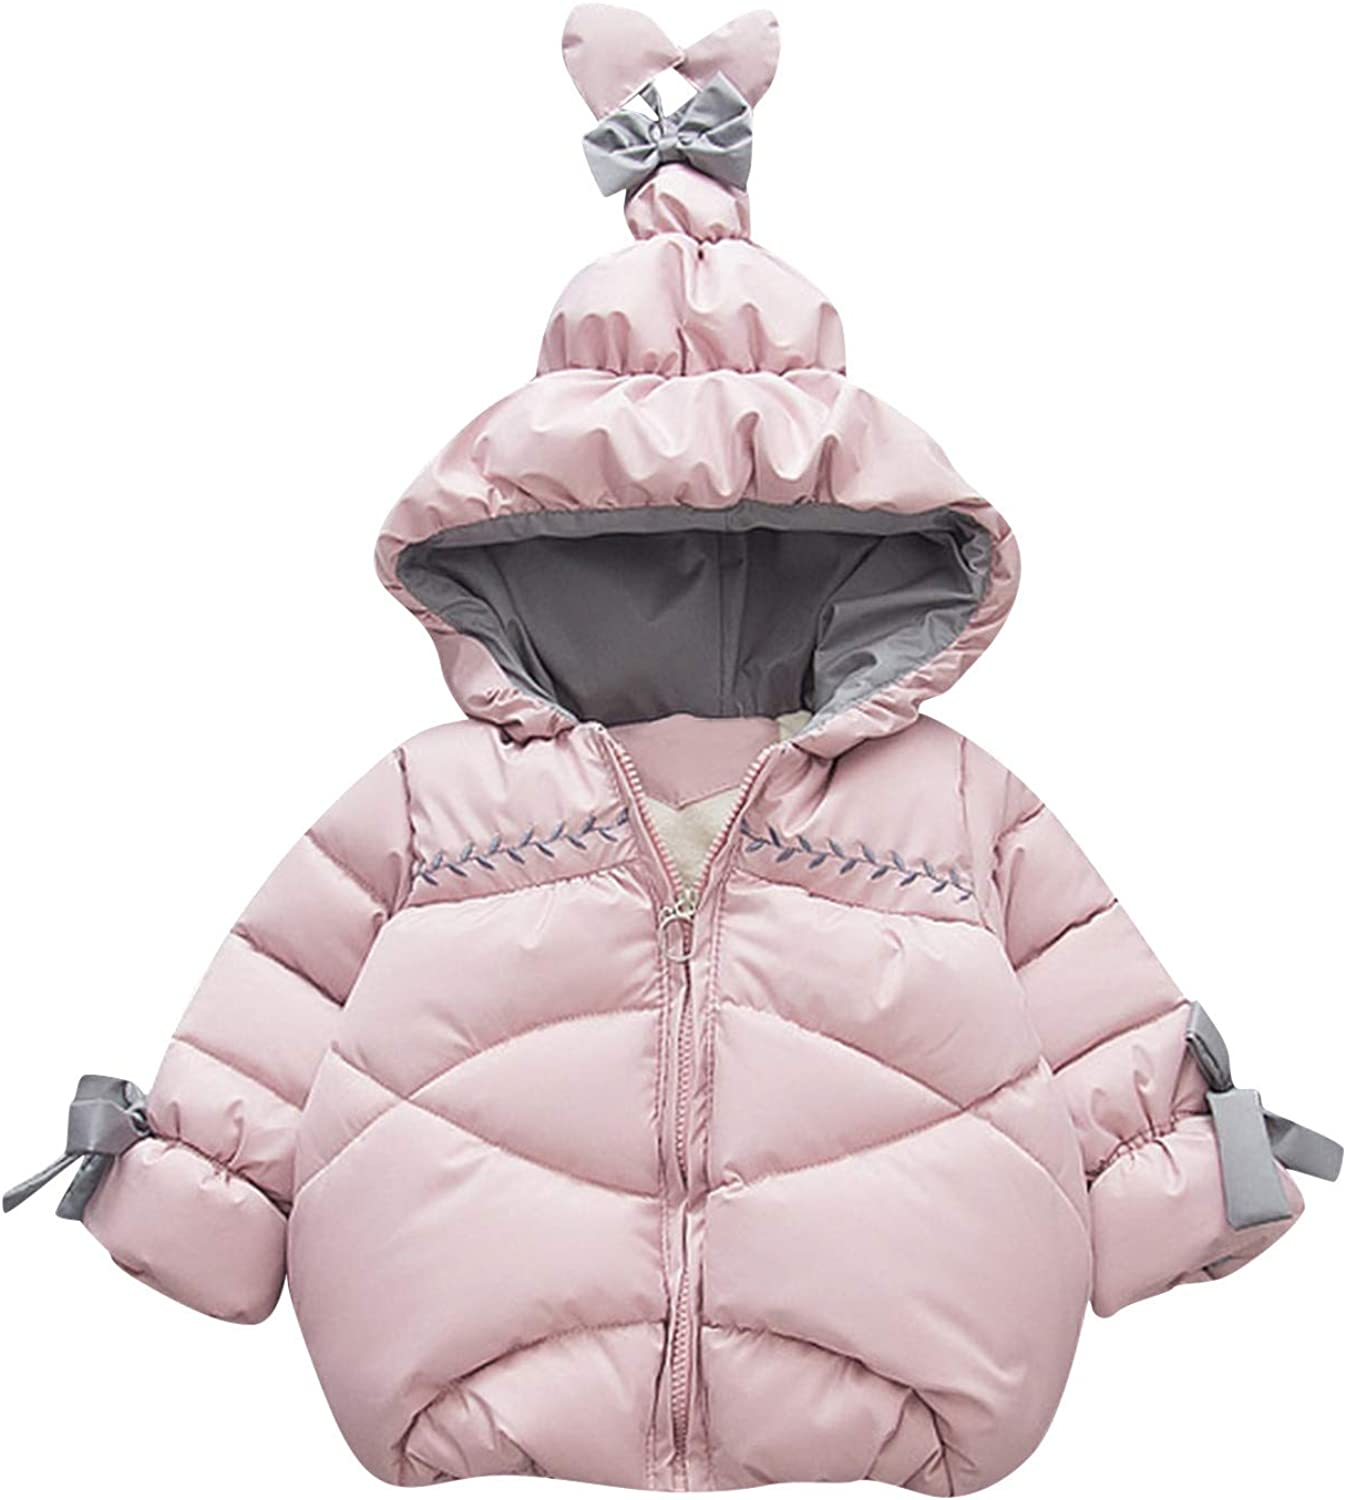 Kids Girls Boys Thick Warm Parkas 35% Baltimore Mall OFF S Hooded Casual Coat Windproof